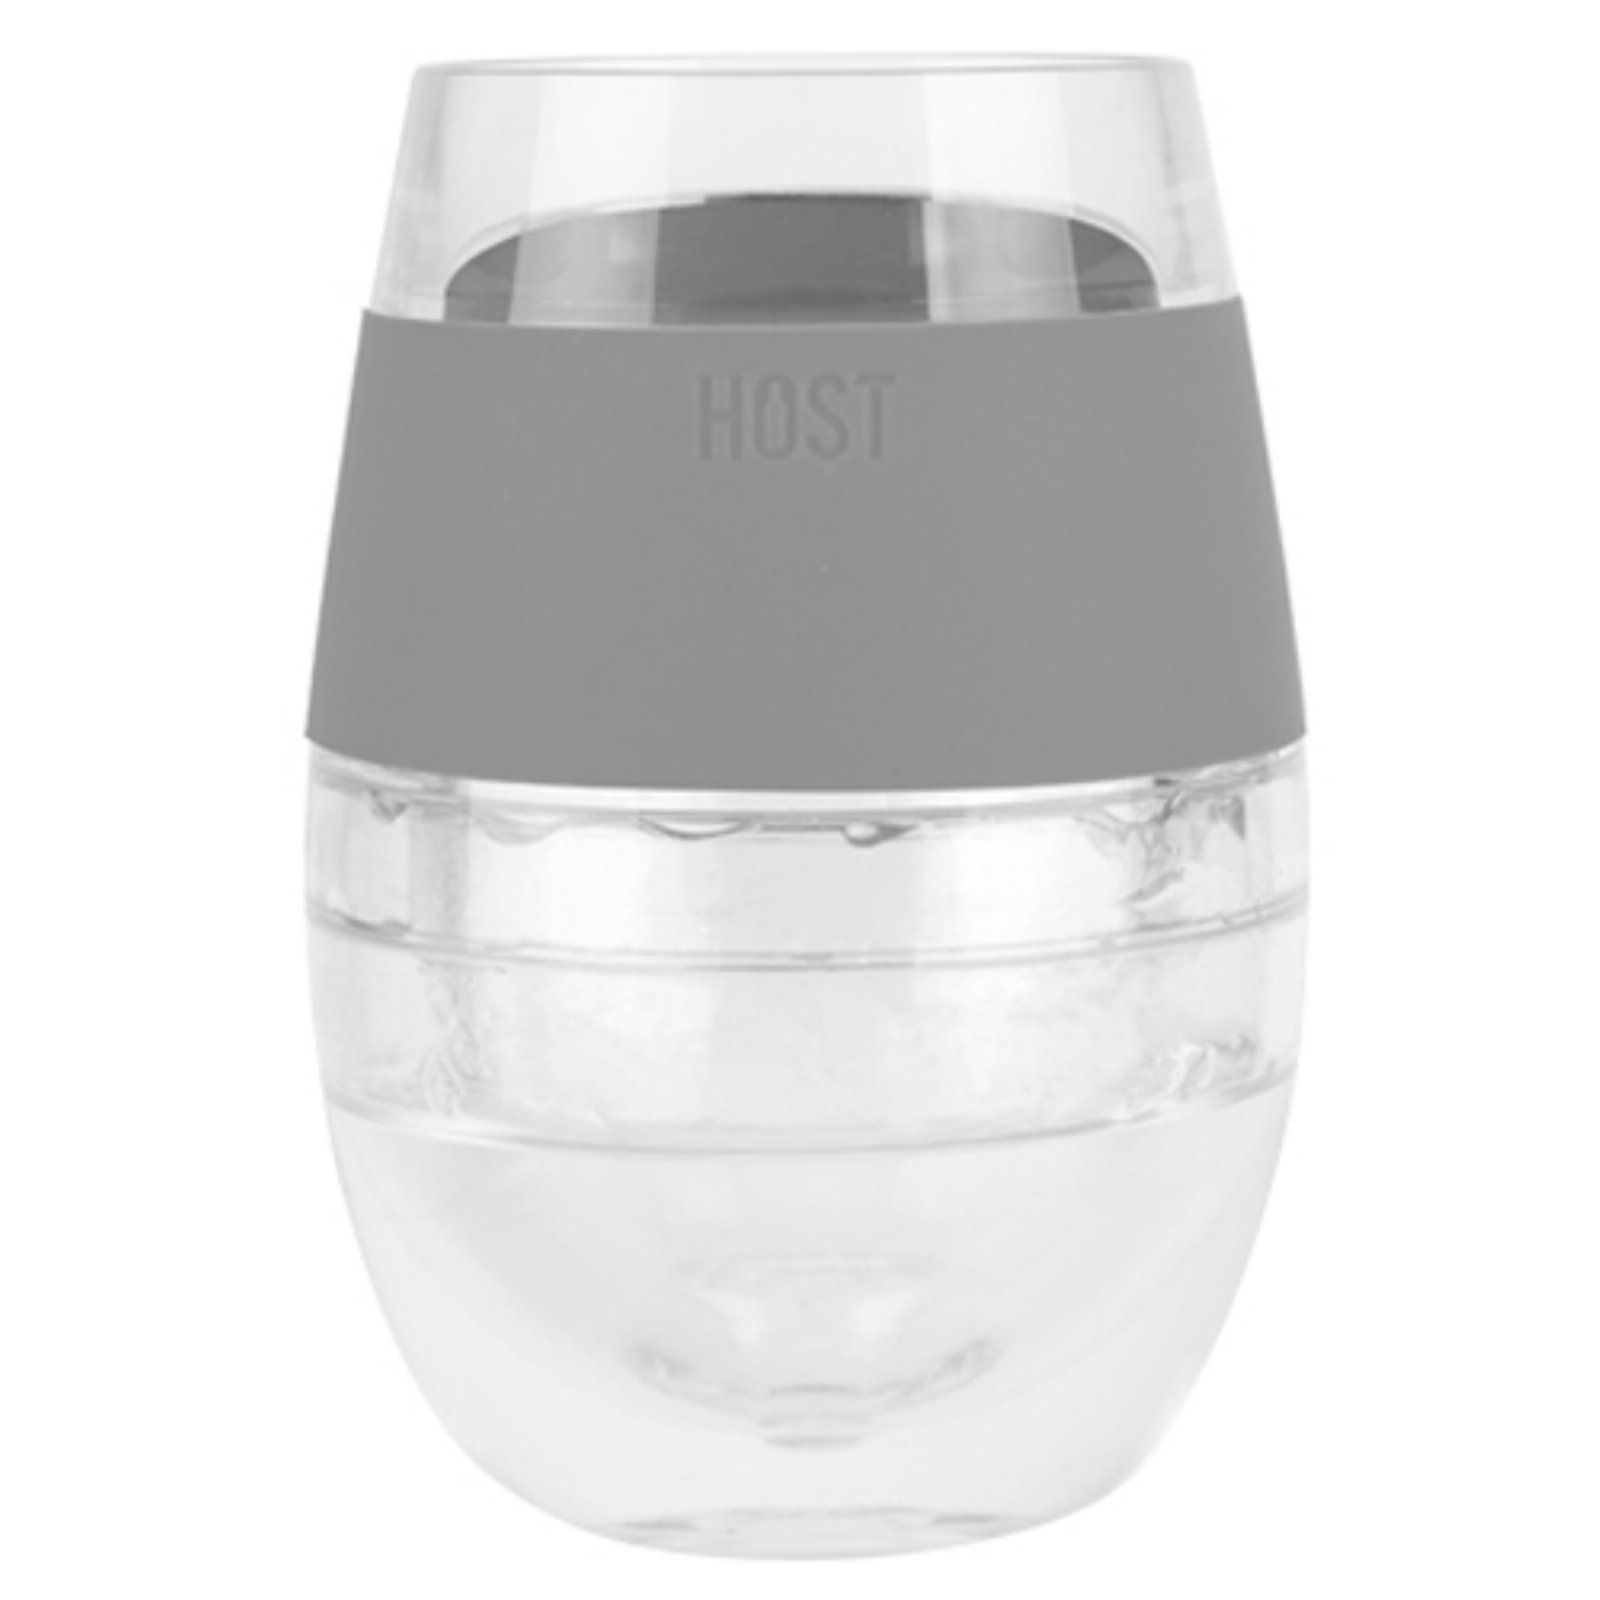 Host Wine Freeze Cooling Cup Gray Clear Products In 2019 Wine